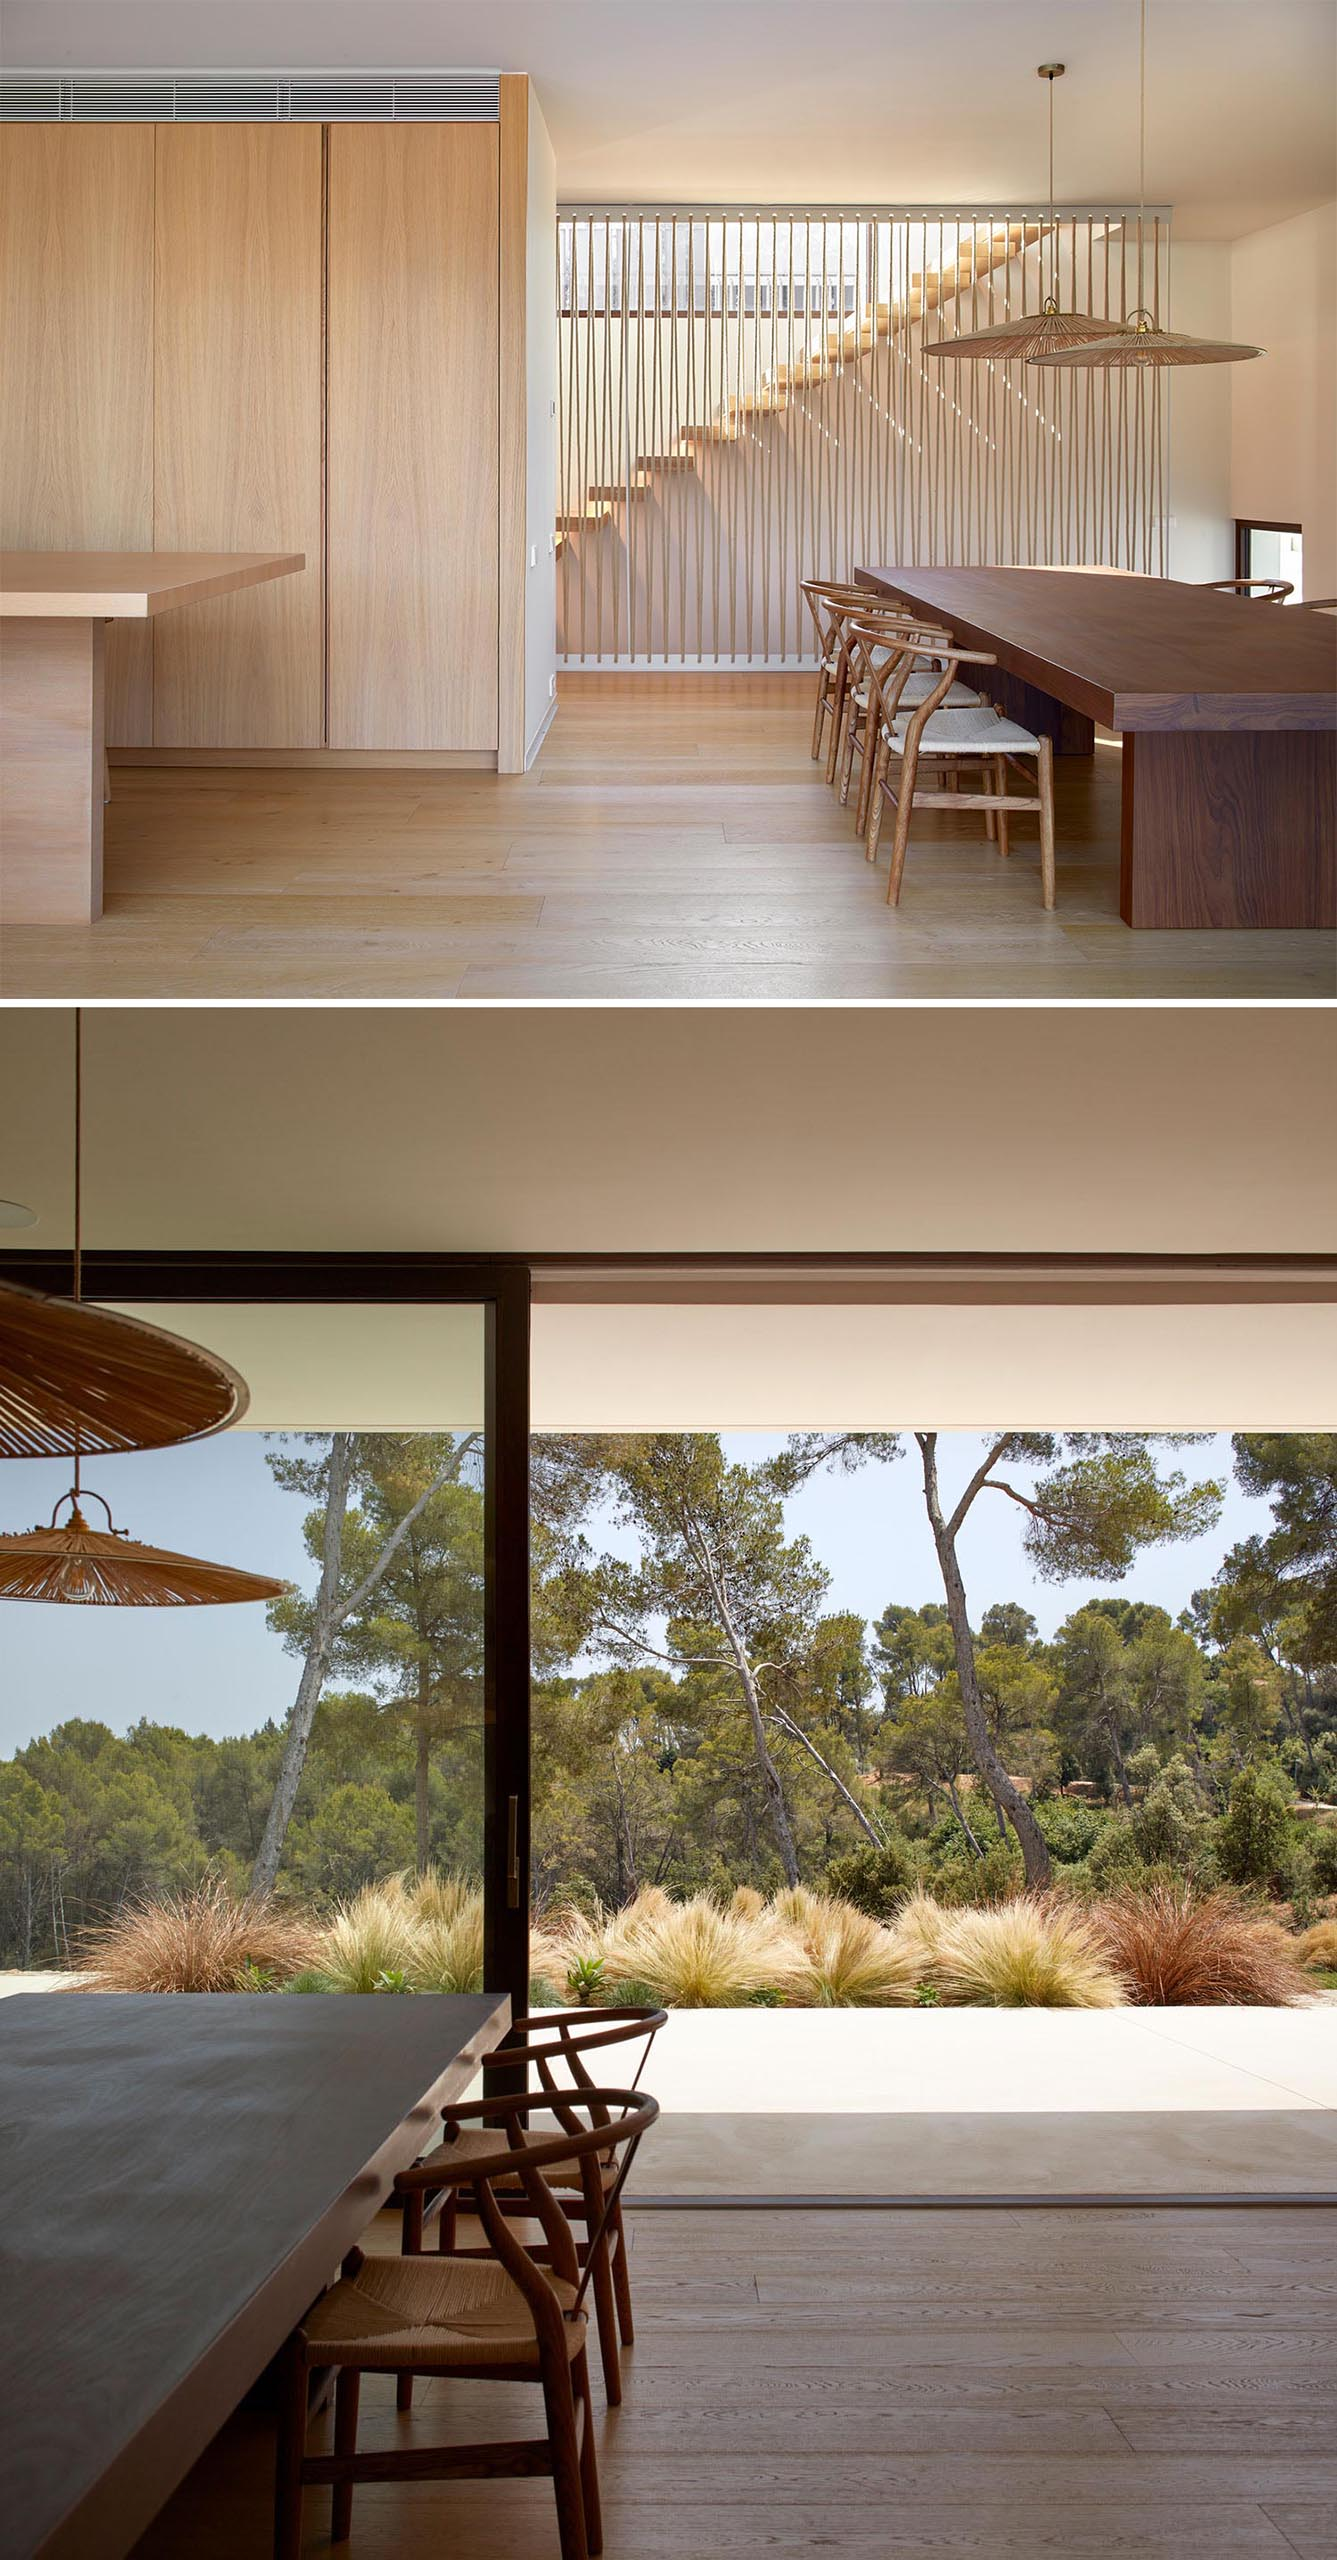 A modern home with a wood and off-white interior opens to a patio via a sliding door.